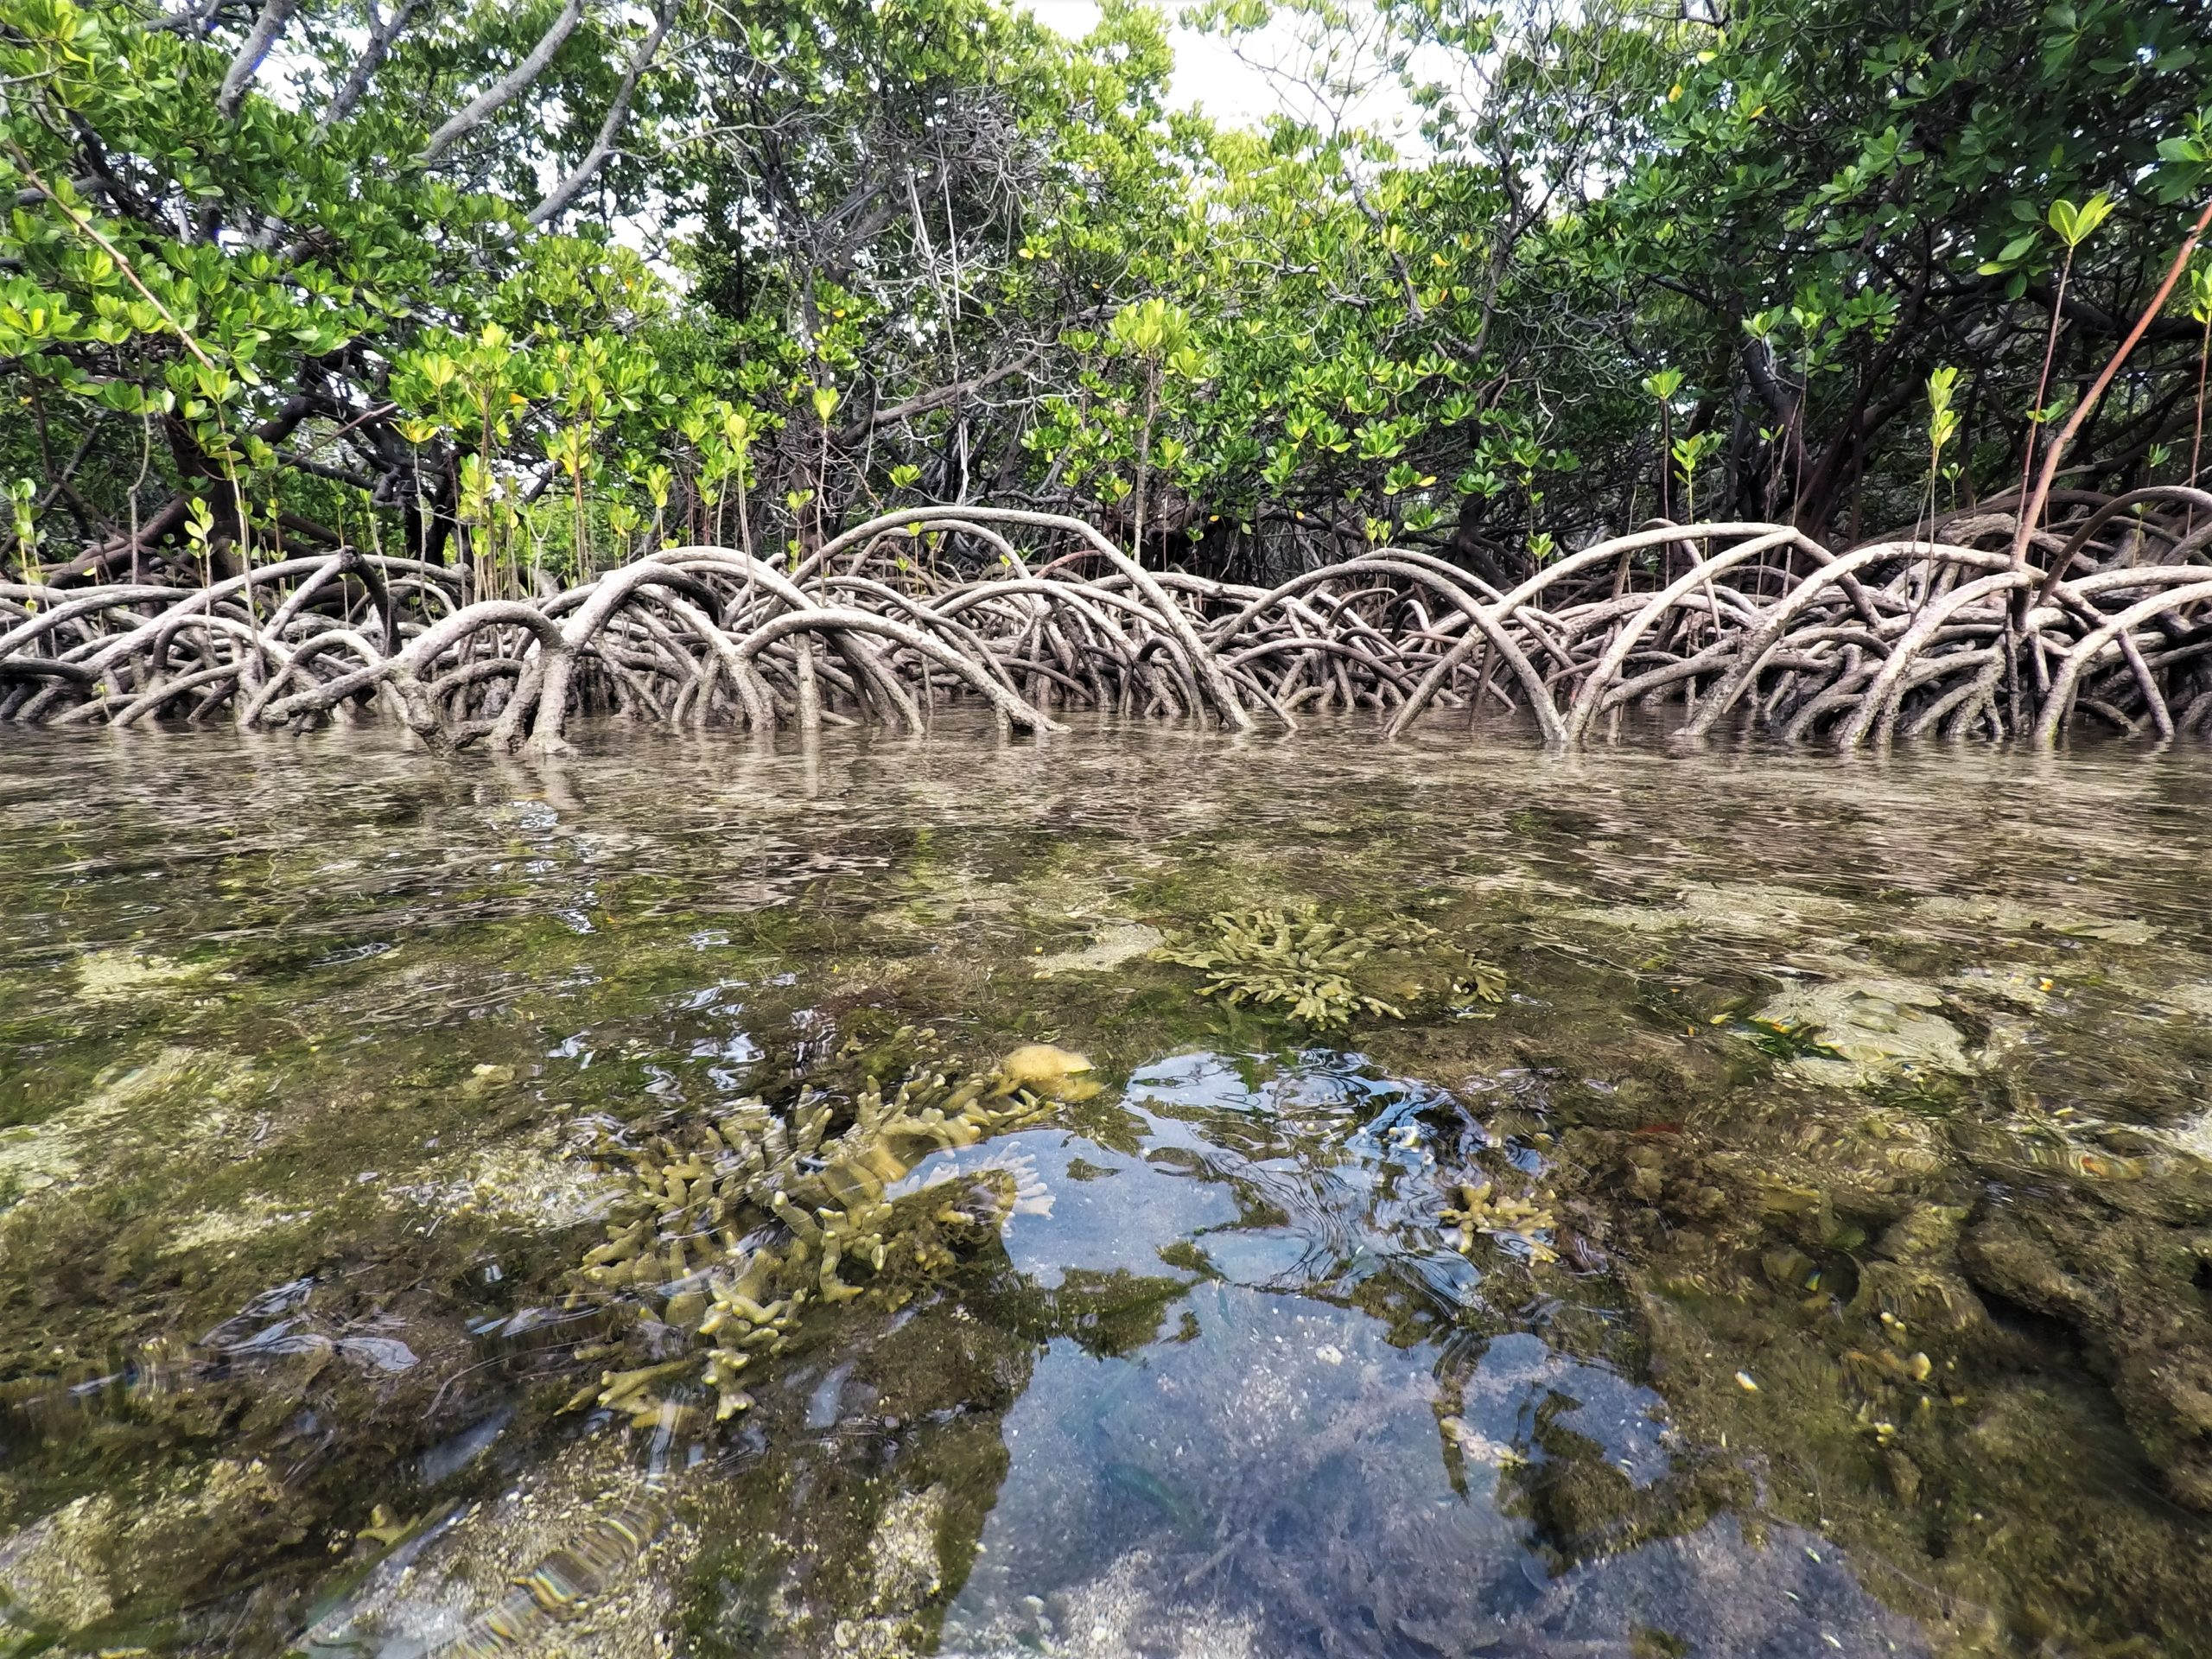 Extreme mangrove corals found on the Great Barrier Reef